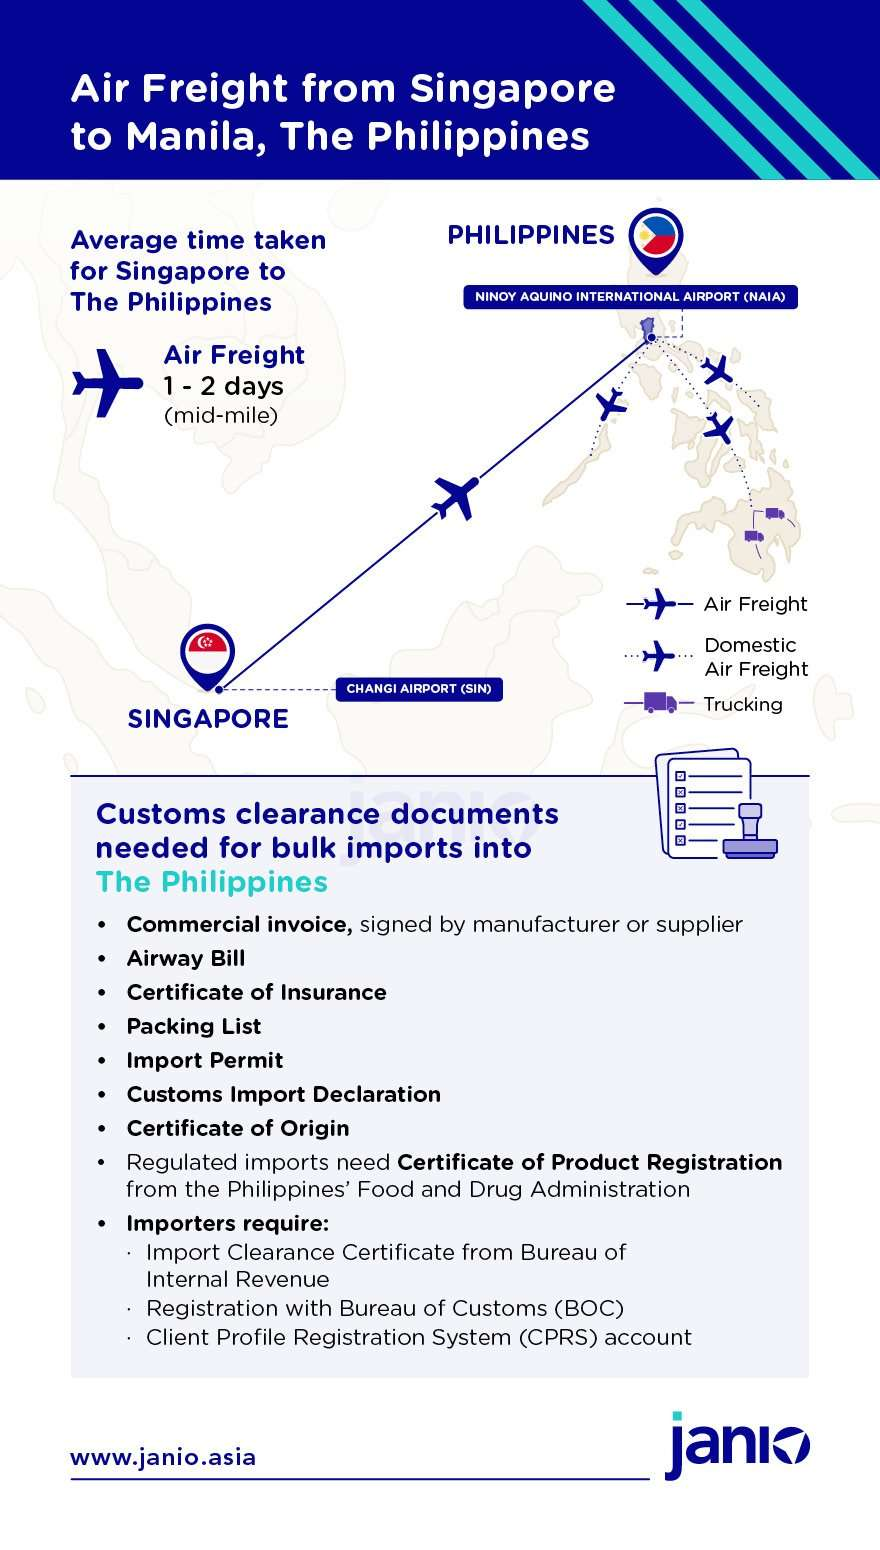 Infographic showing how air freight is done from Singapore to Manila, The Philippines. Also includes customs documents required for B2C shipments into the Philippines